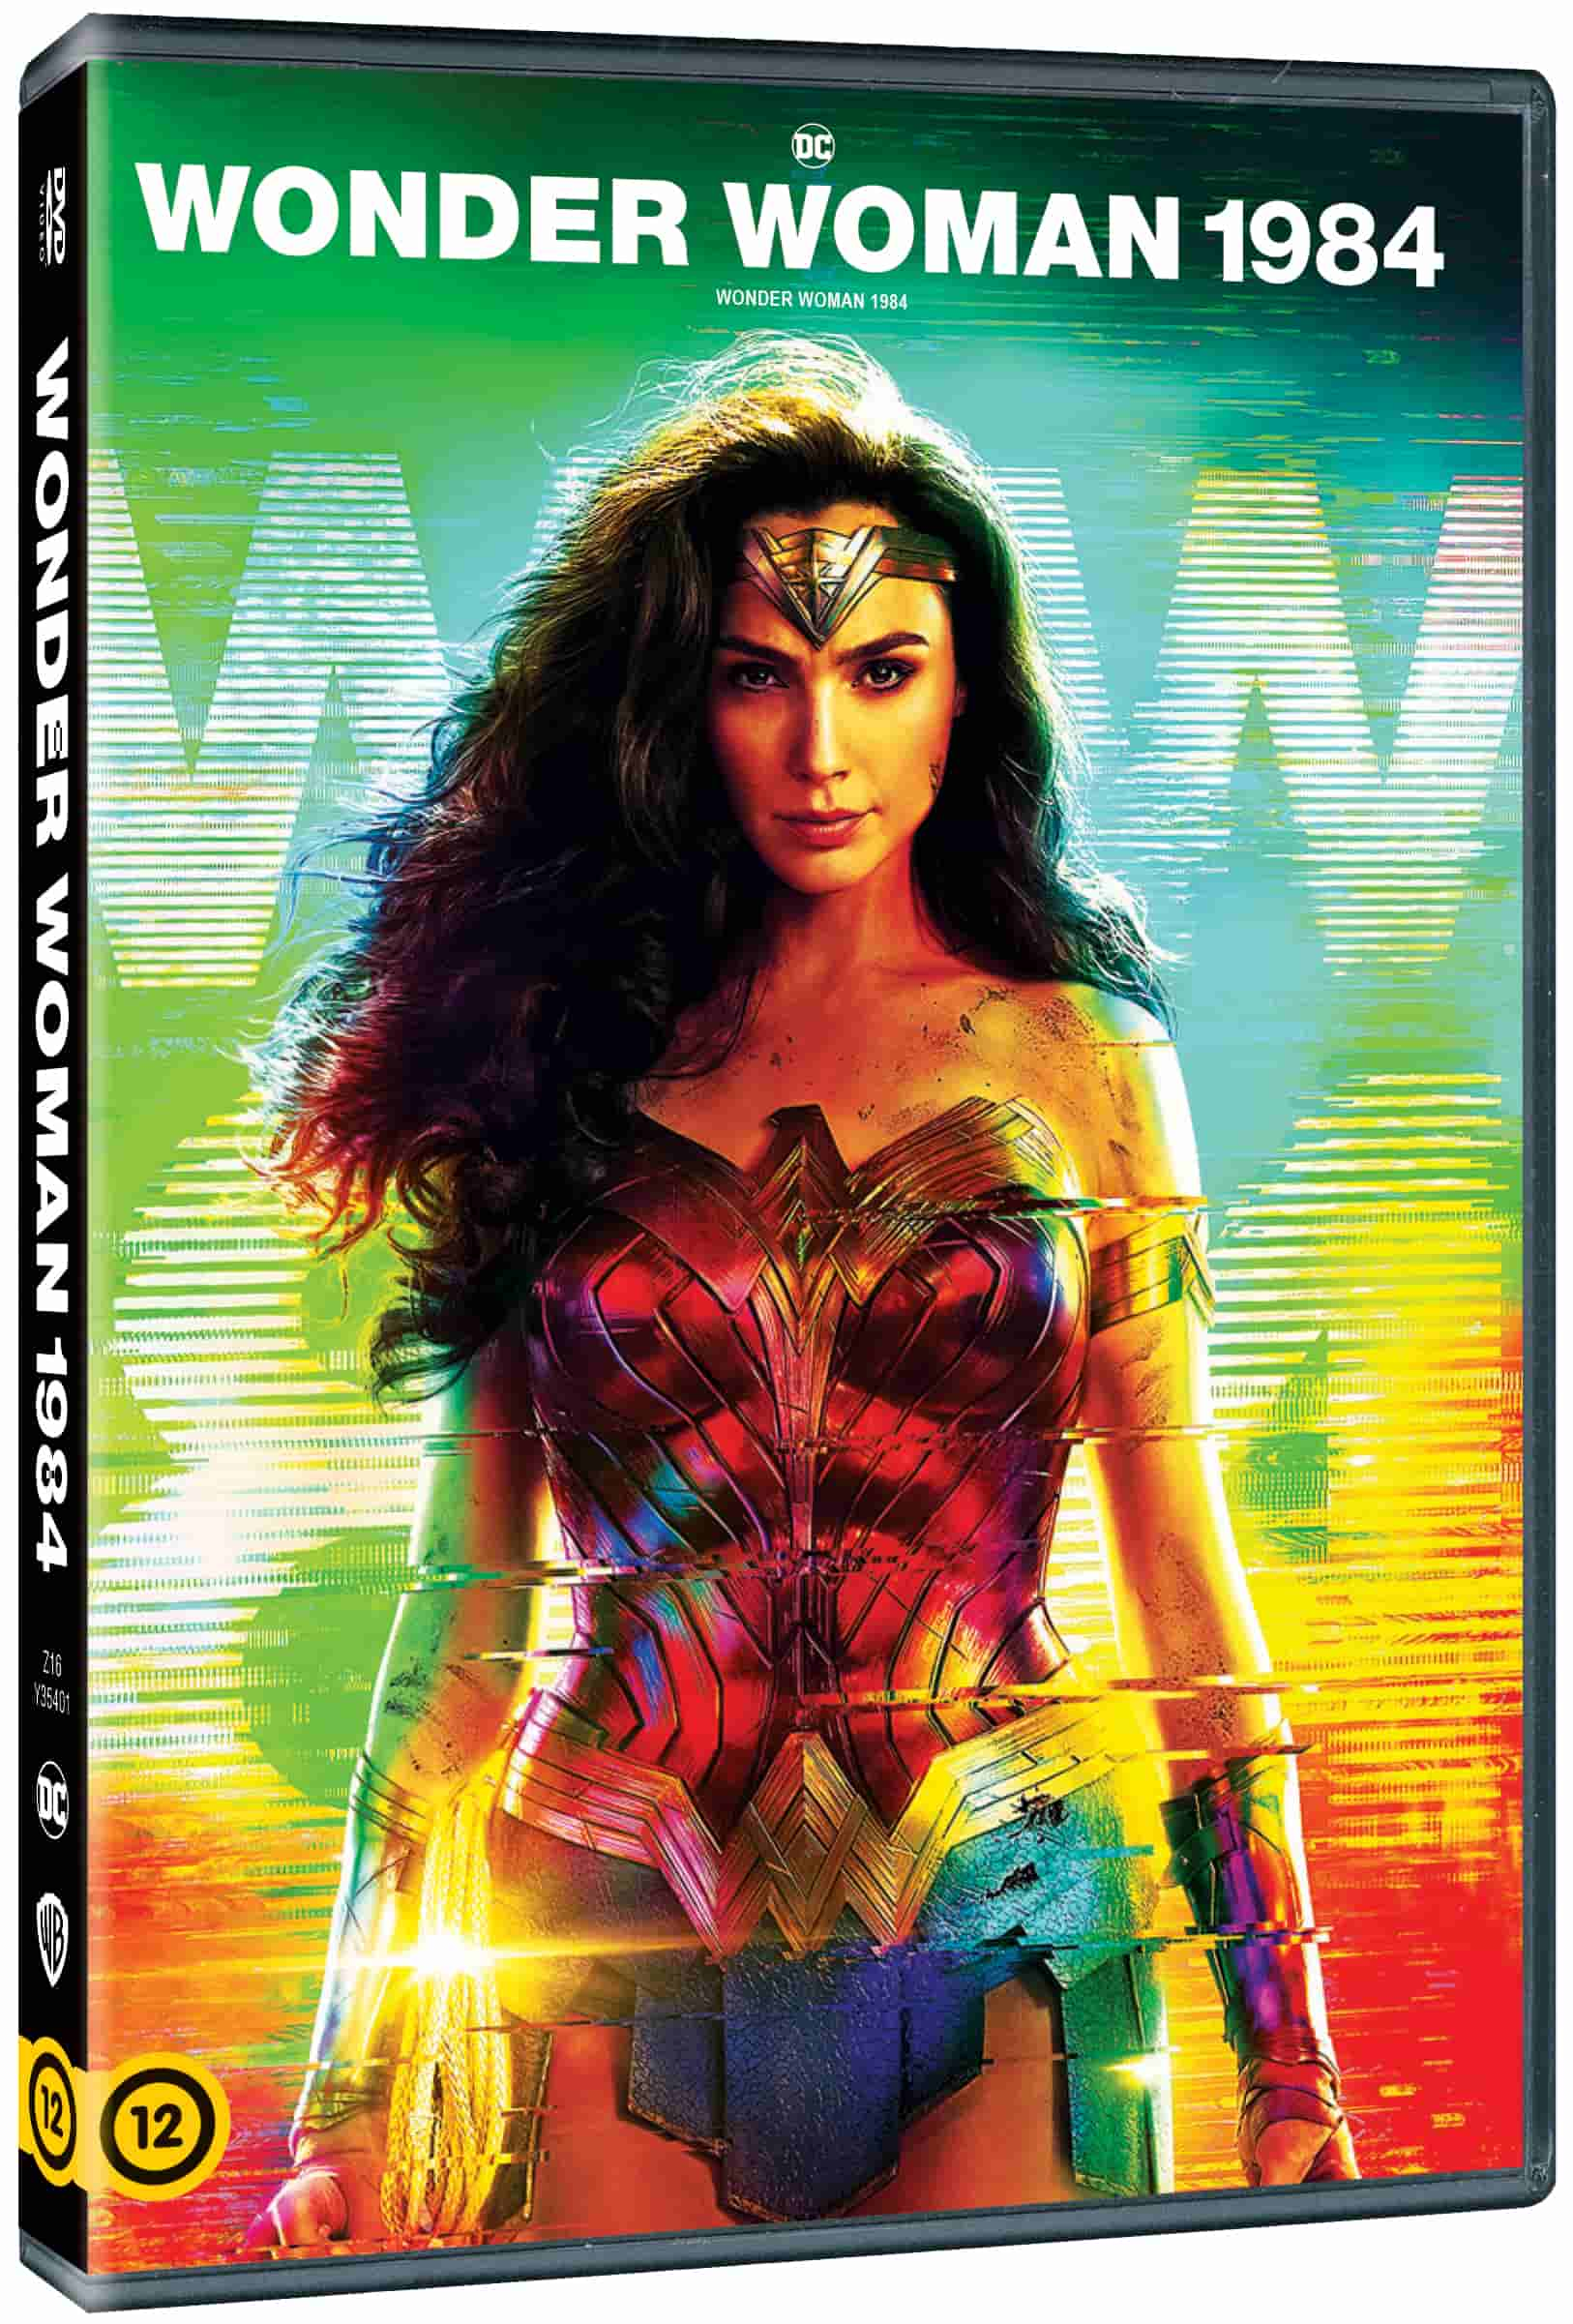 Wonder Woman 1984 - DVD